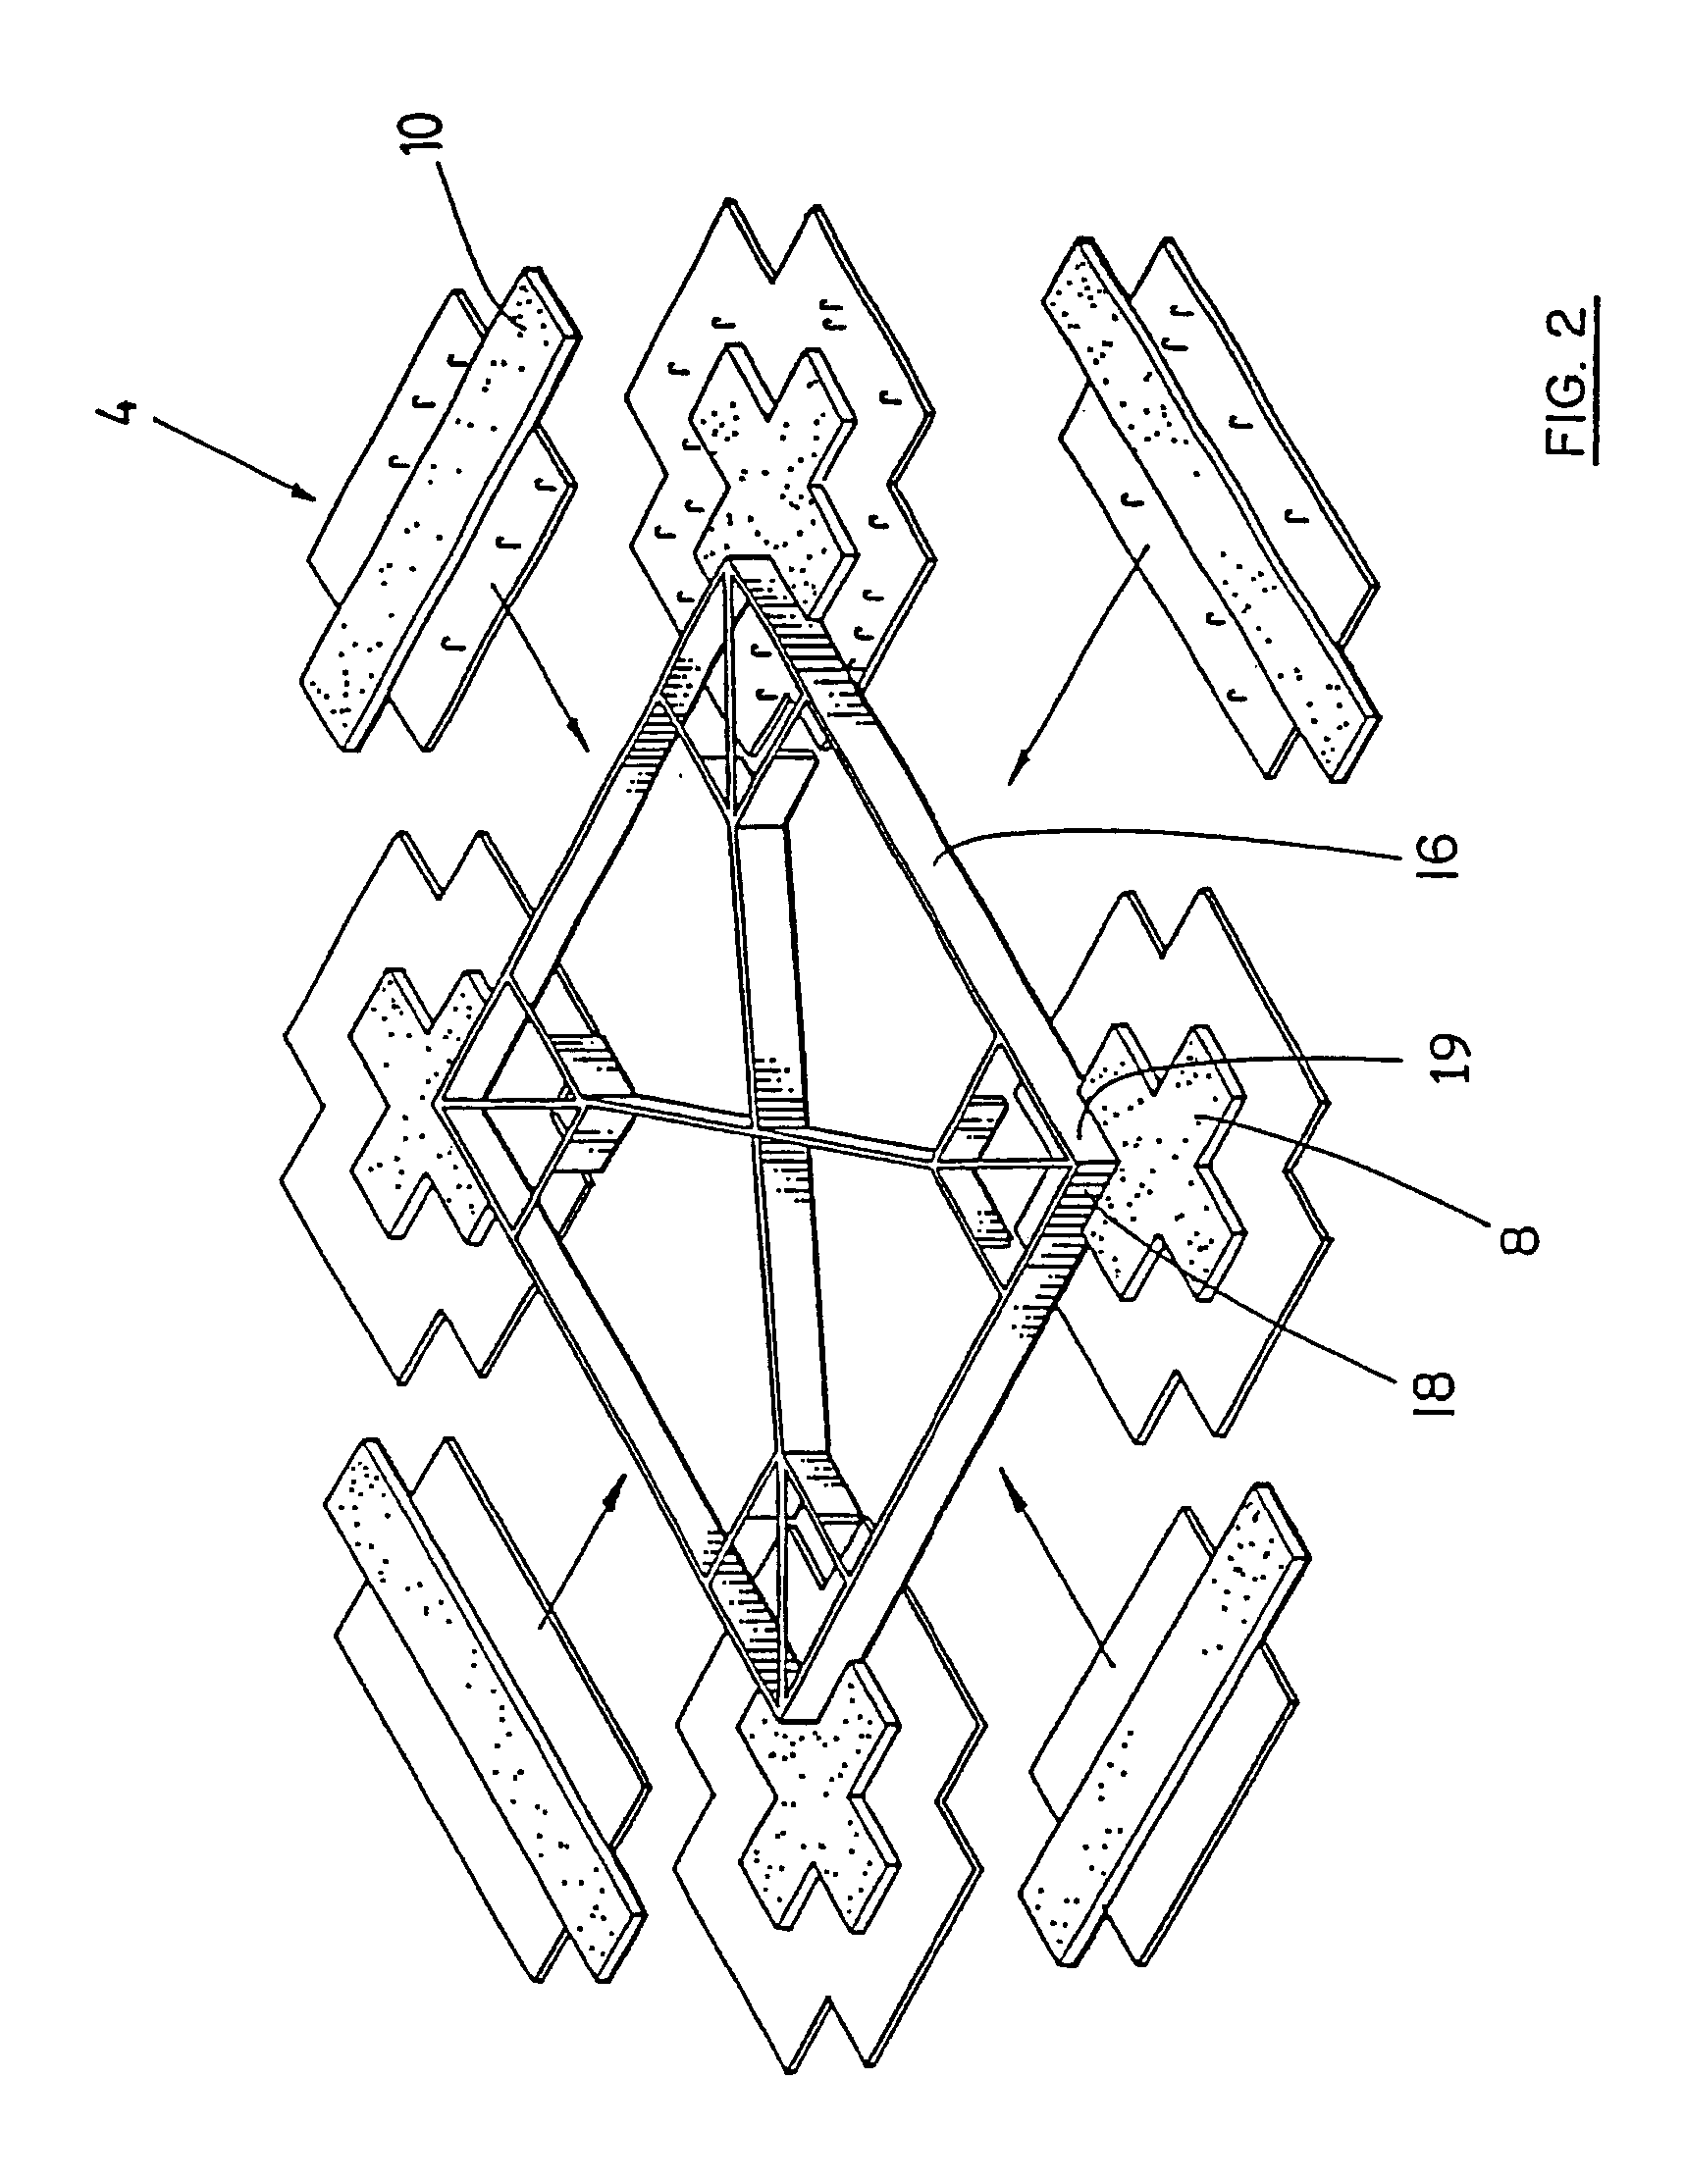 Diagram Of Social Support besides 7036943144259439 additionally US6395362 further How Construct Wiring Diagrams moreover St. on floor subflooring